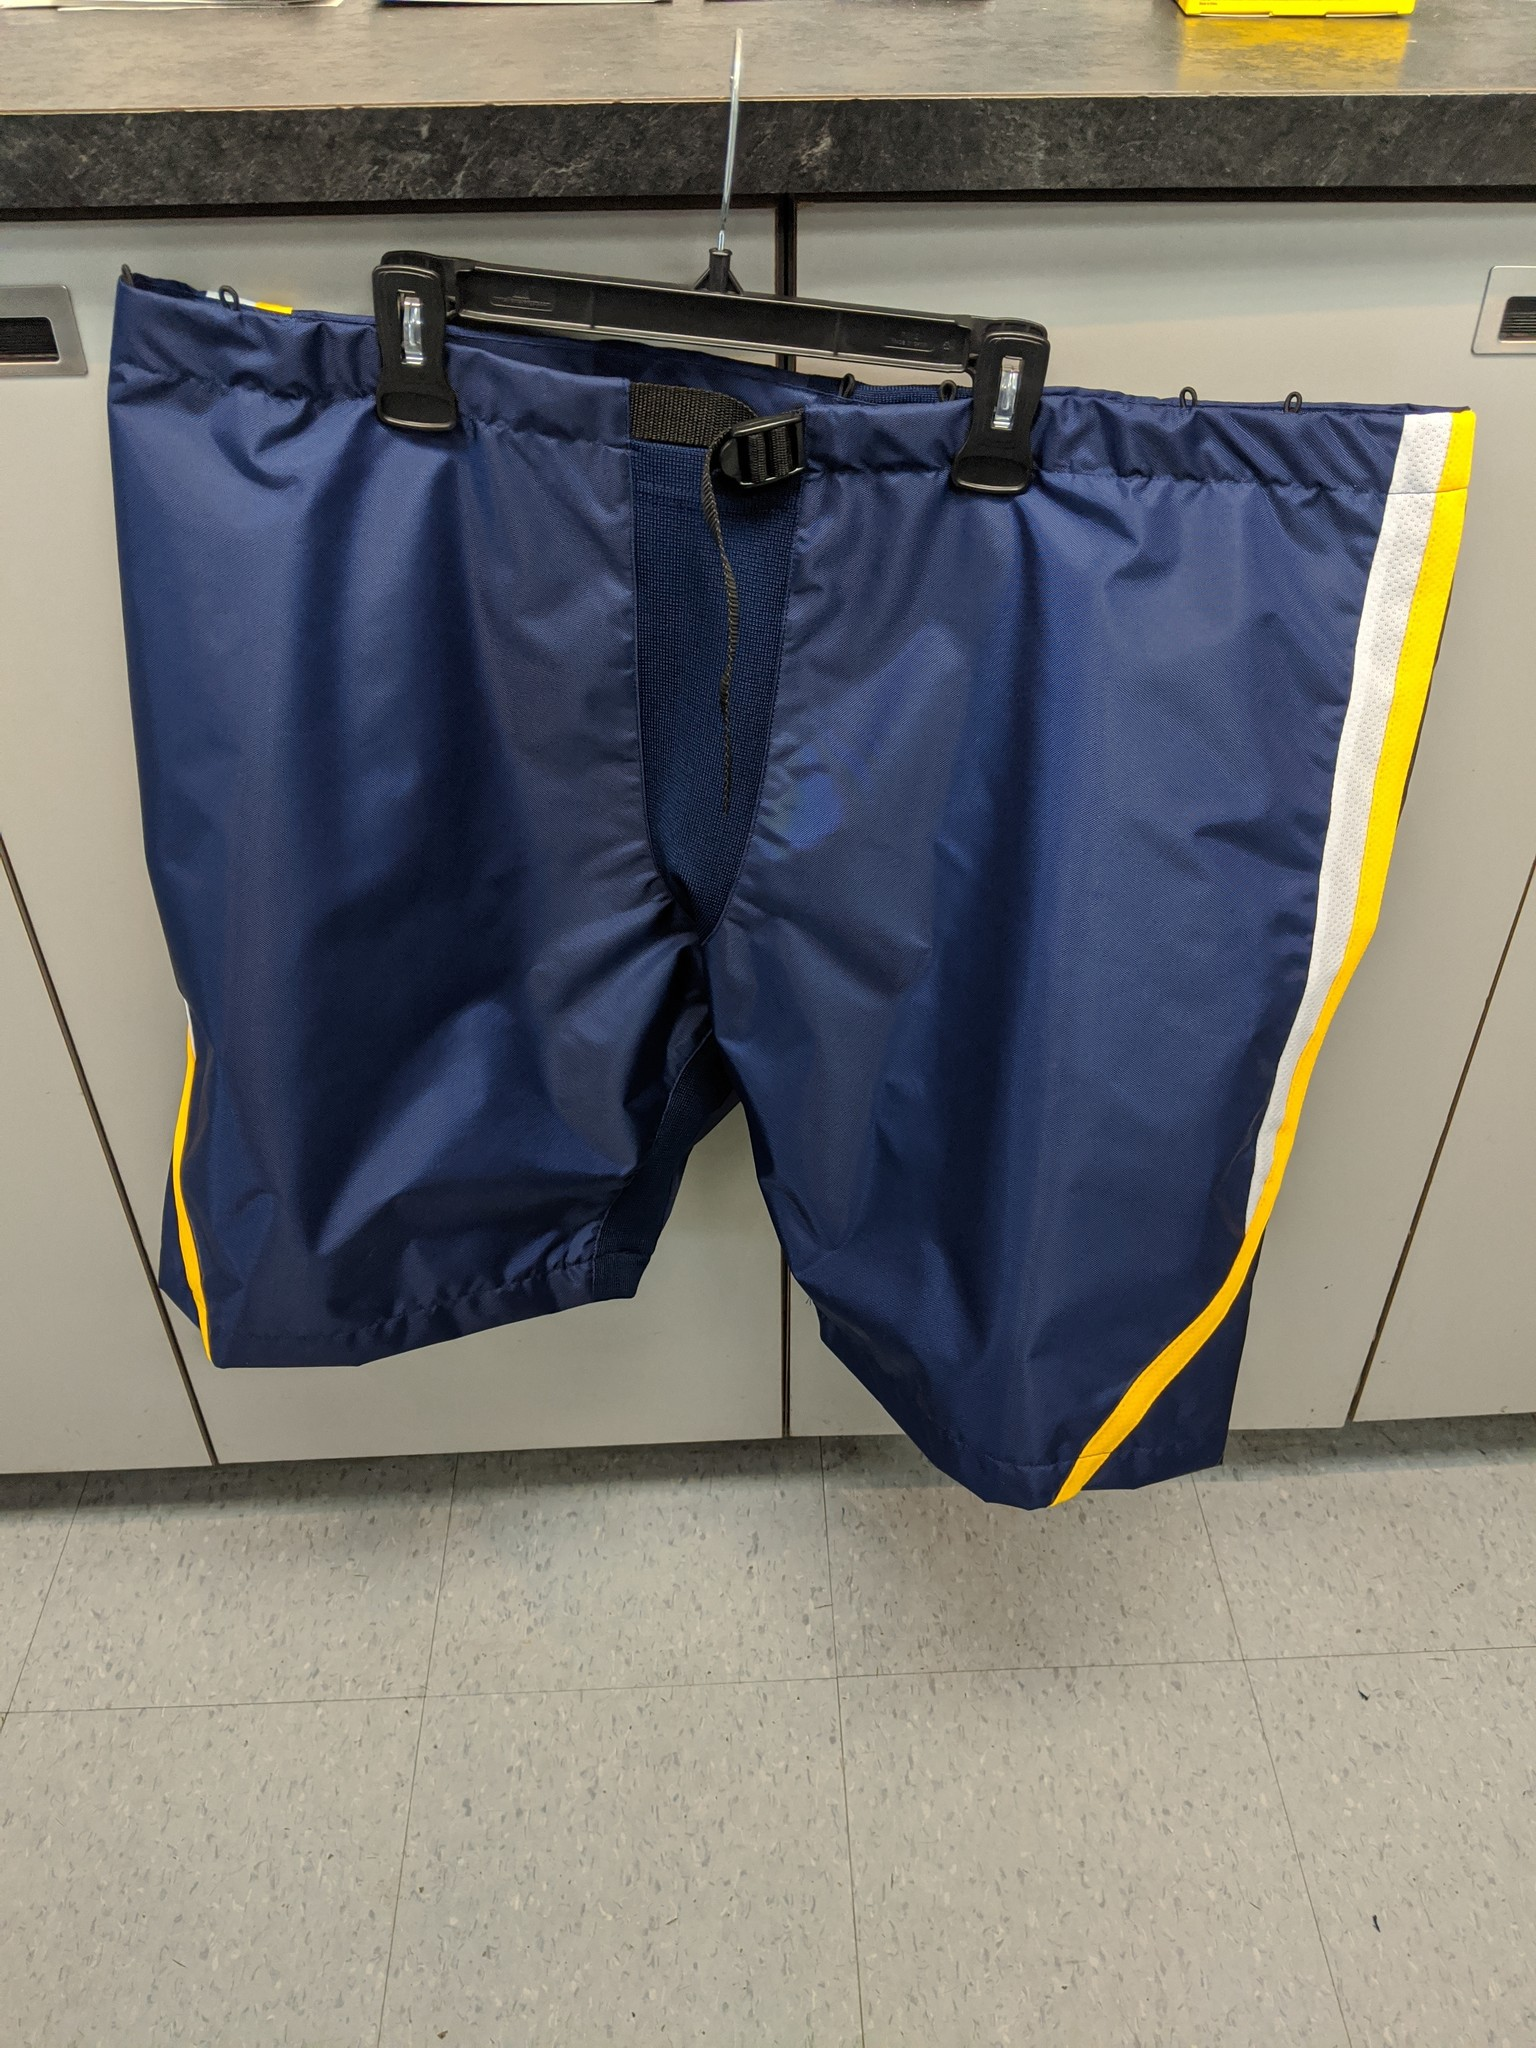 KOBE BEDFORD BLUES CUSTOM PANT SHELL KOBE